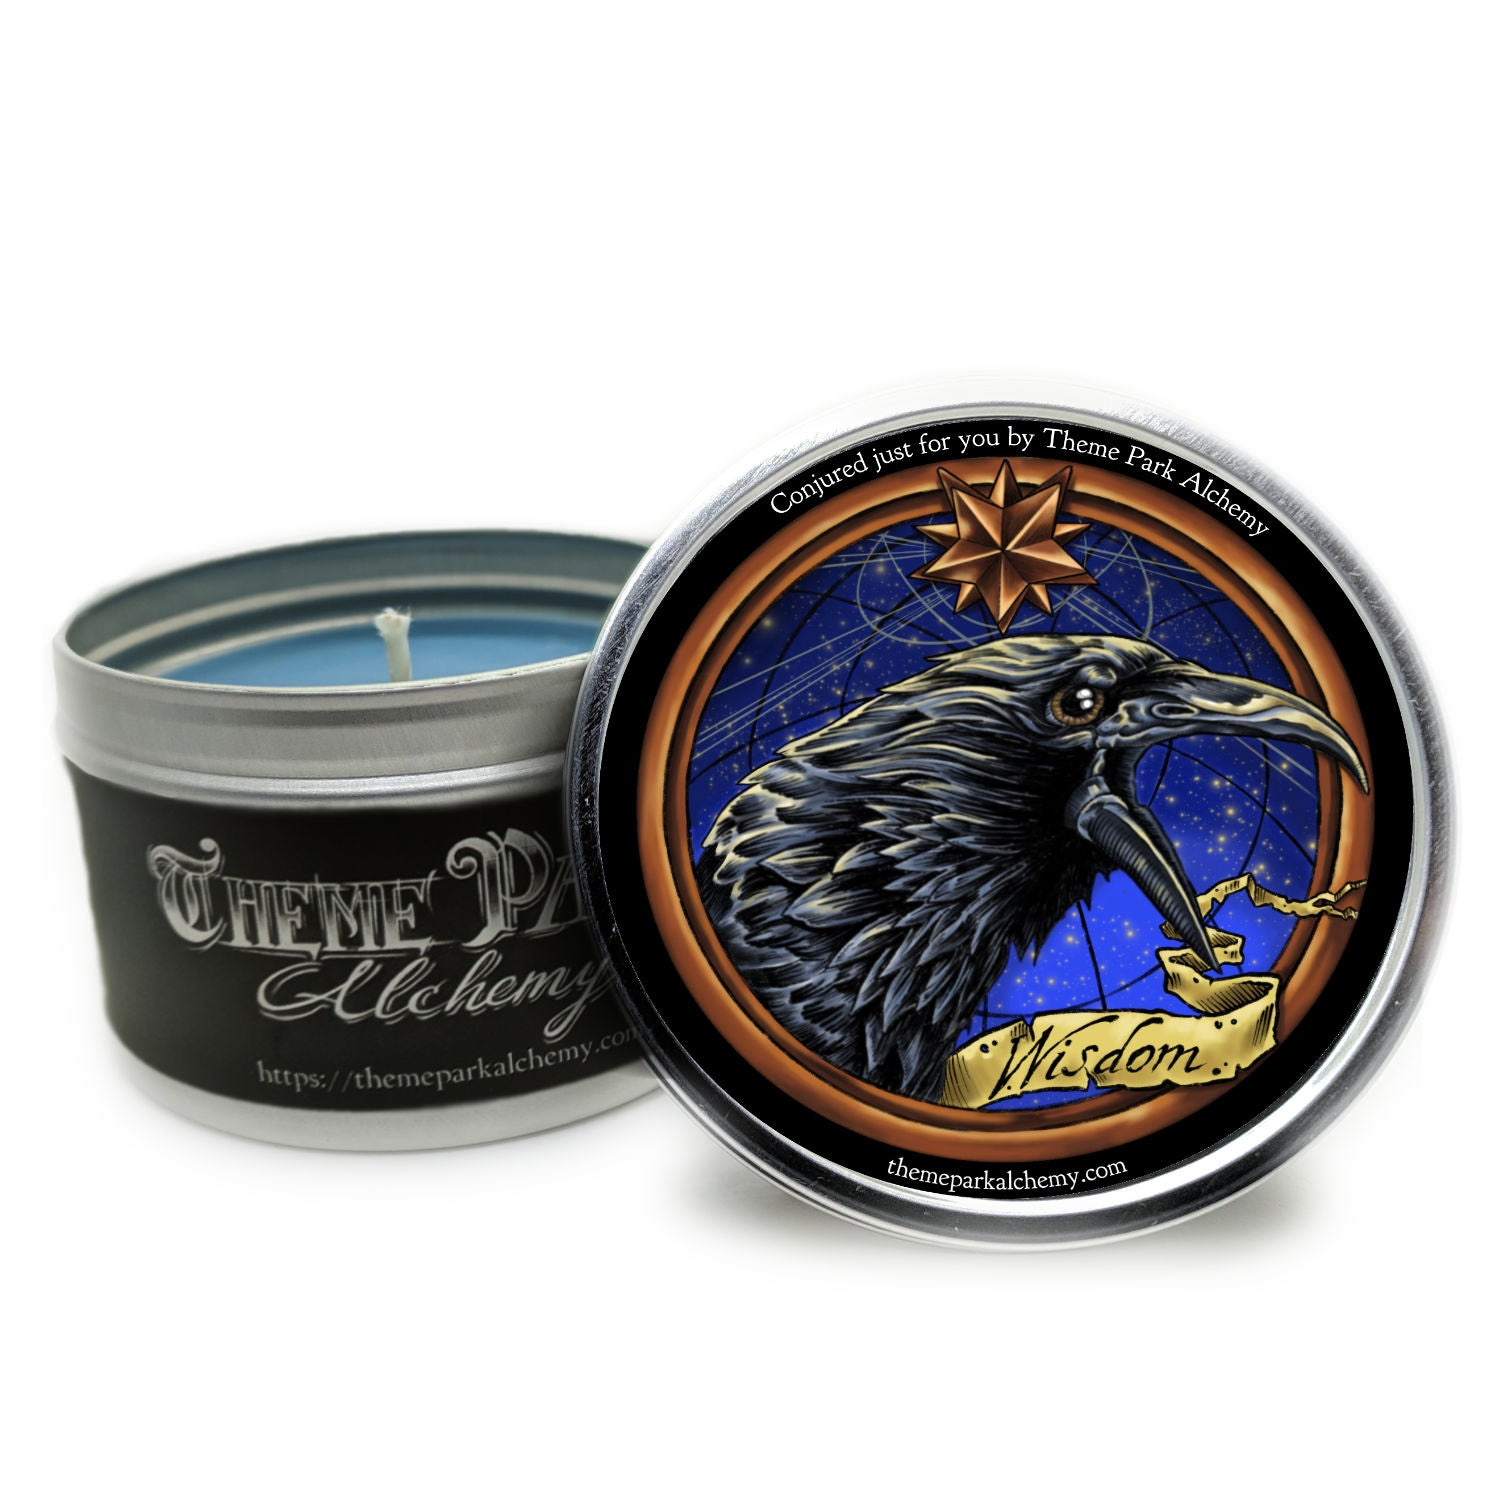 Wisdom - 8oz Scented Candle